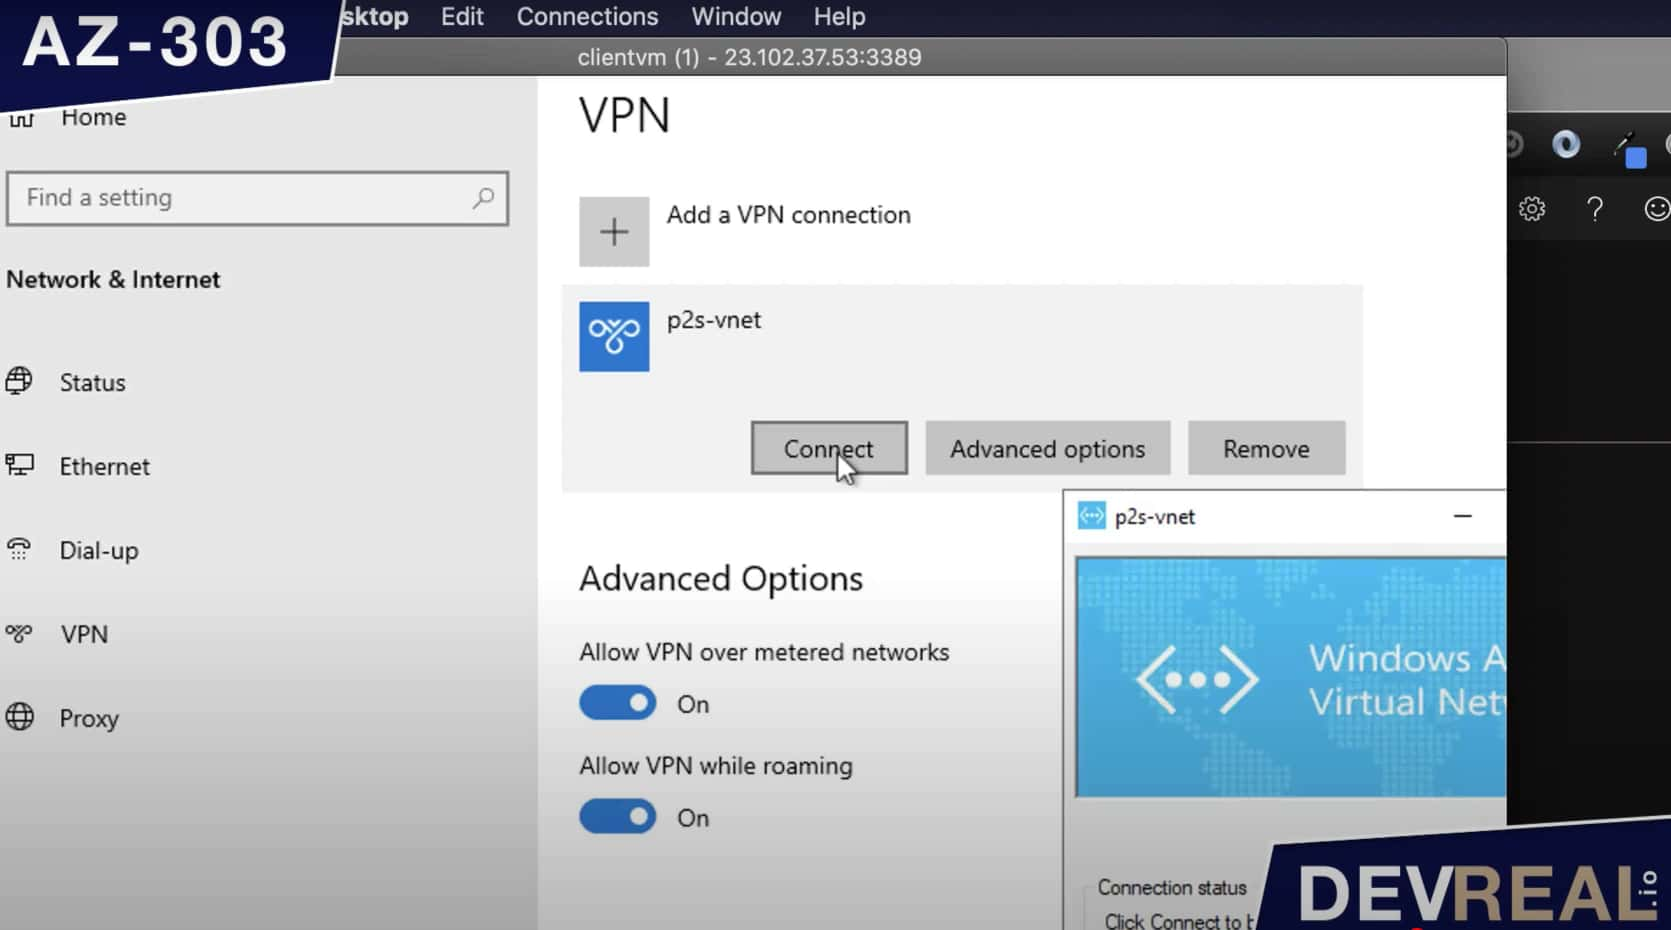 Connect to virtual network